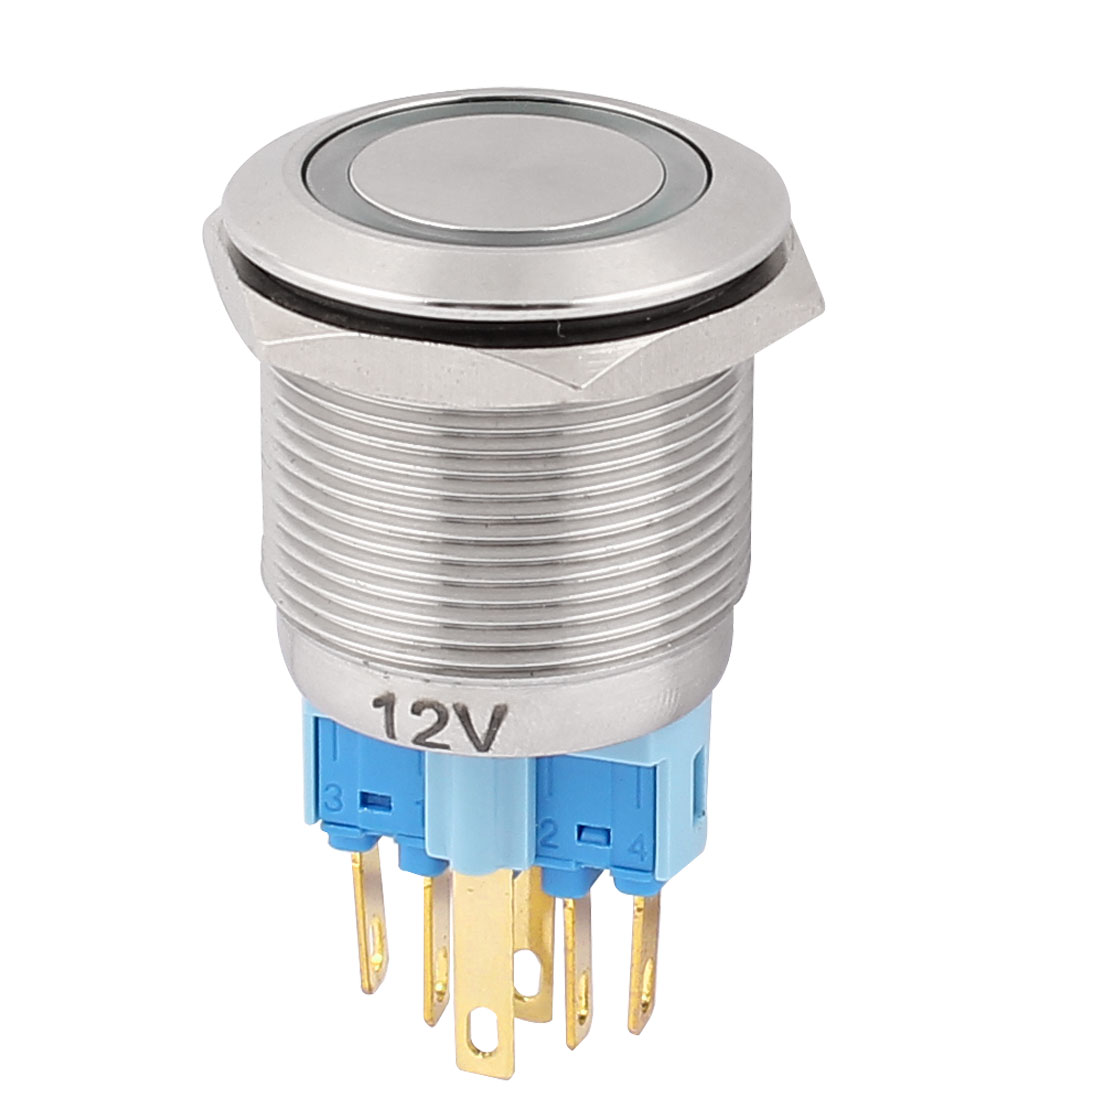 DC 12V 18mm Green LED Light 22mm Mounted Thread 6 Pins DPST NO/NC Latching Push Button Switch